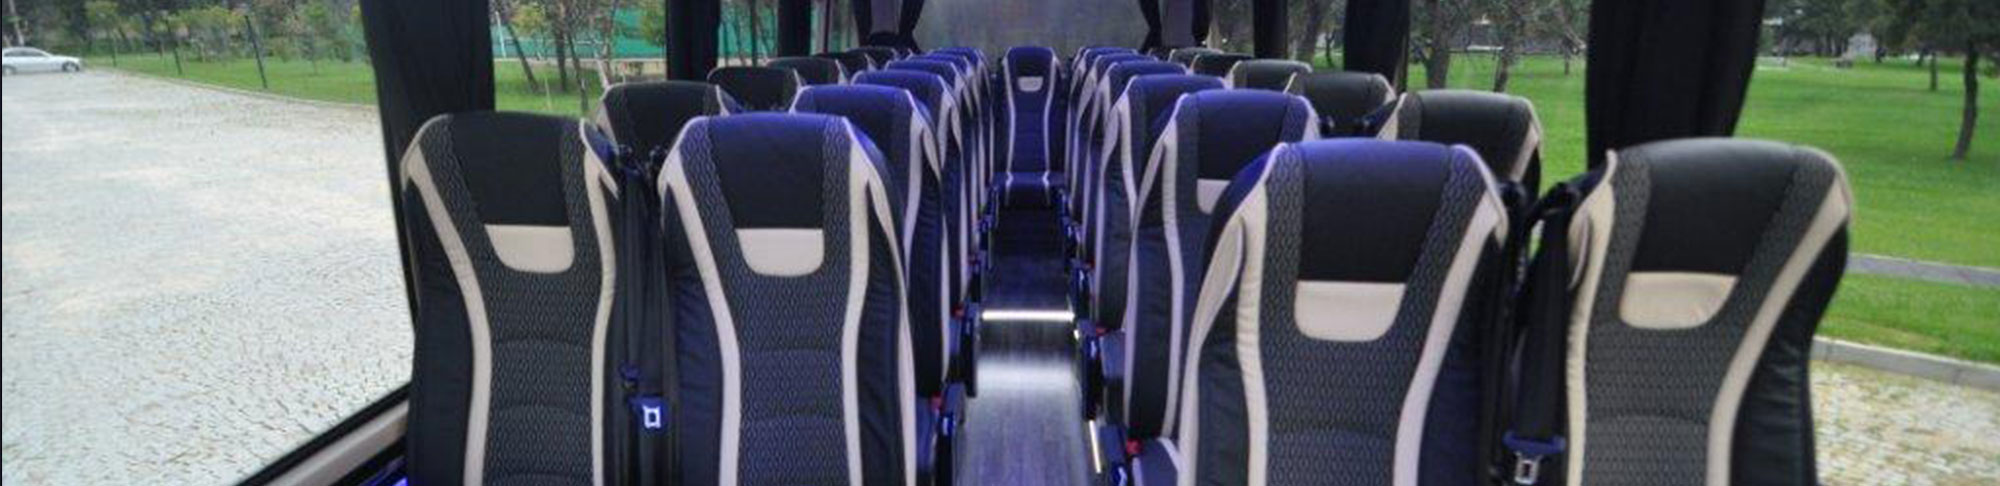 modern grey and white coach bus seating banner